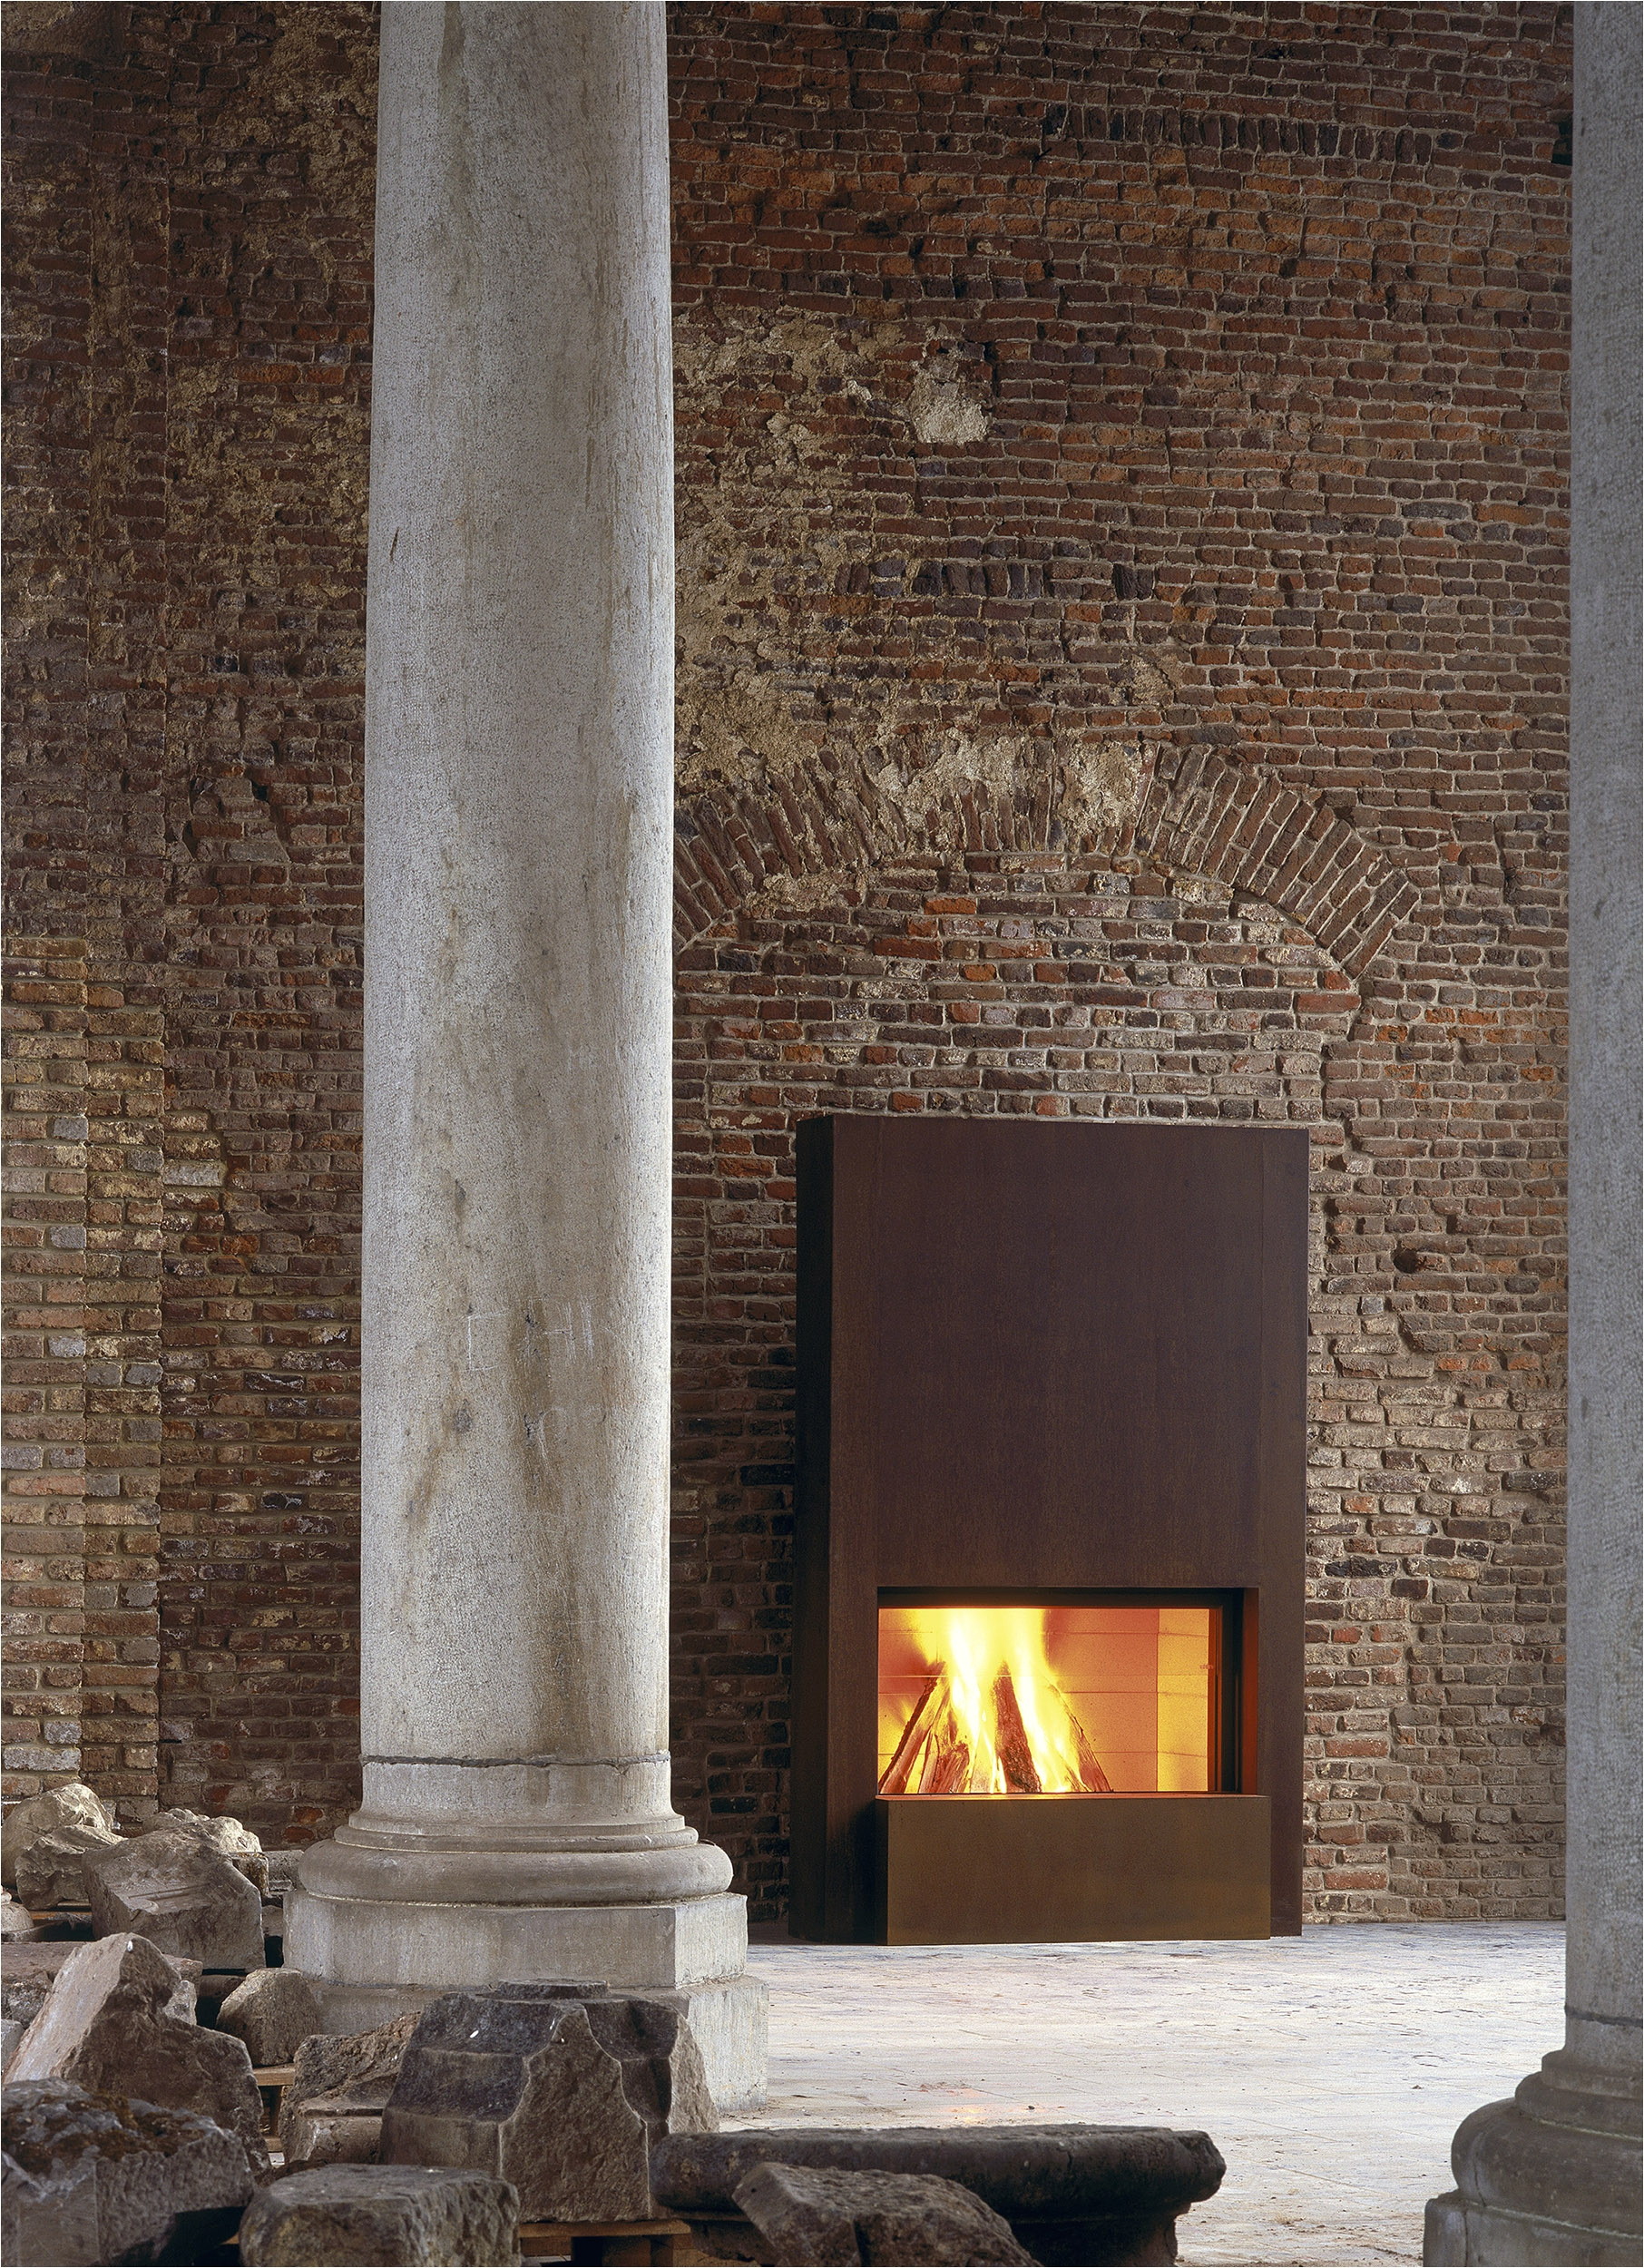 preway fireplace for sale australia modern designer fireplaces wood heaters oblica melbourne of preway fireplace for sale australia